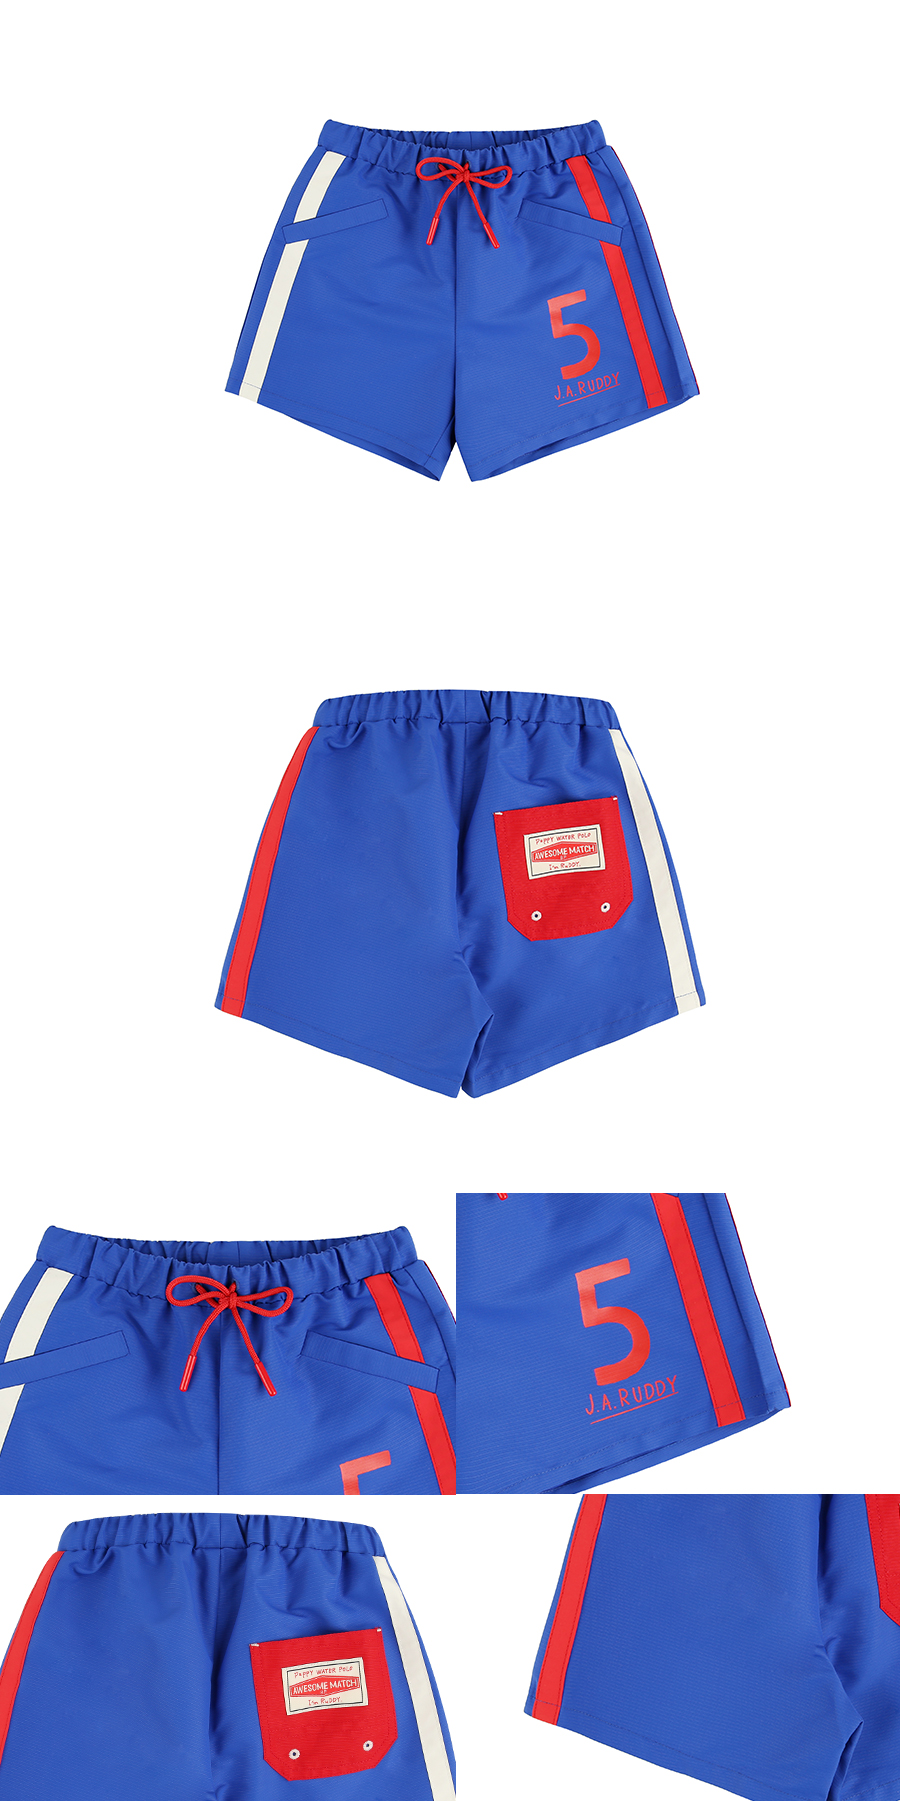 Number 5 ruddy swim pants 상세 이미지